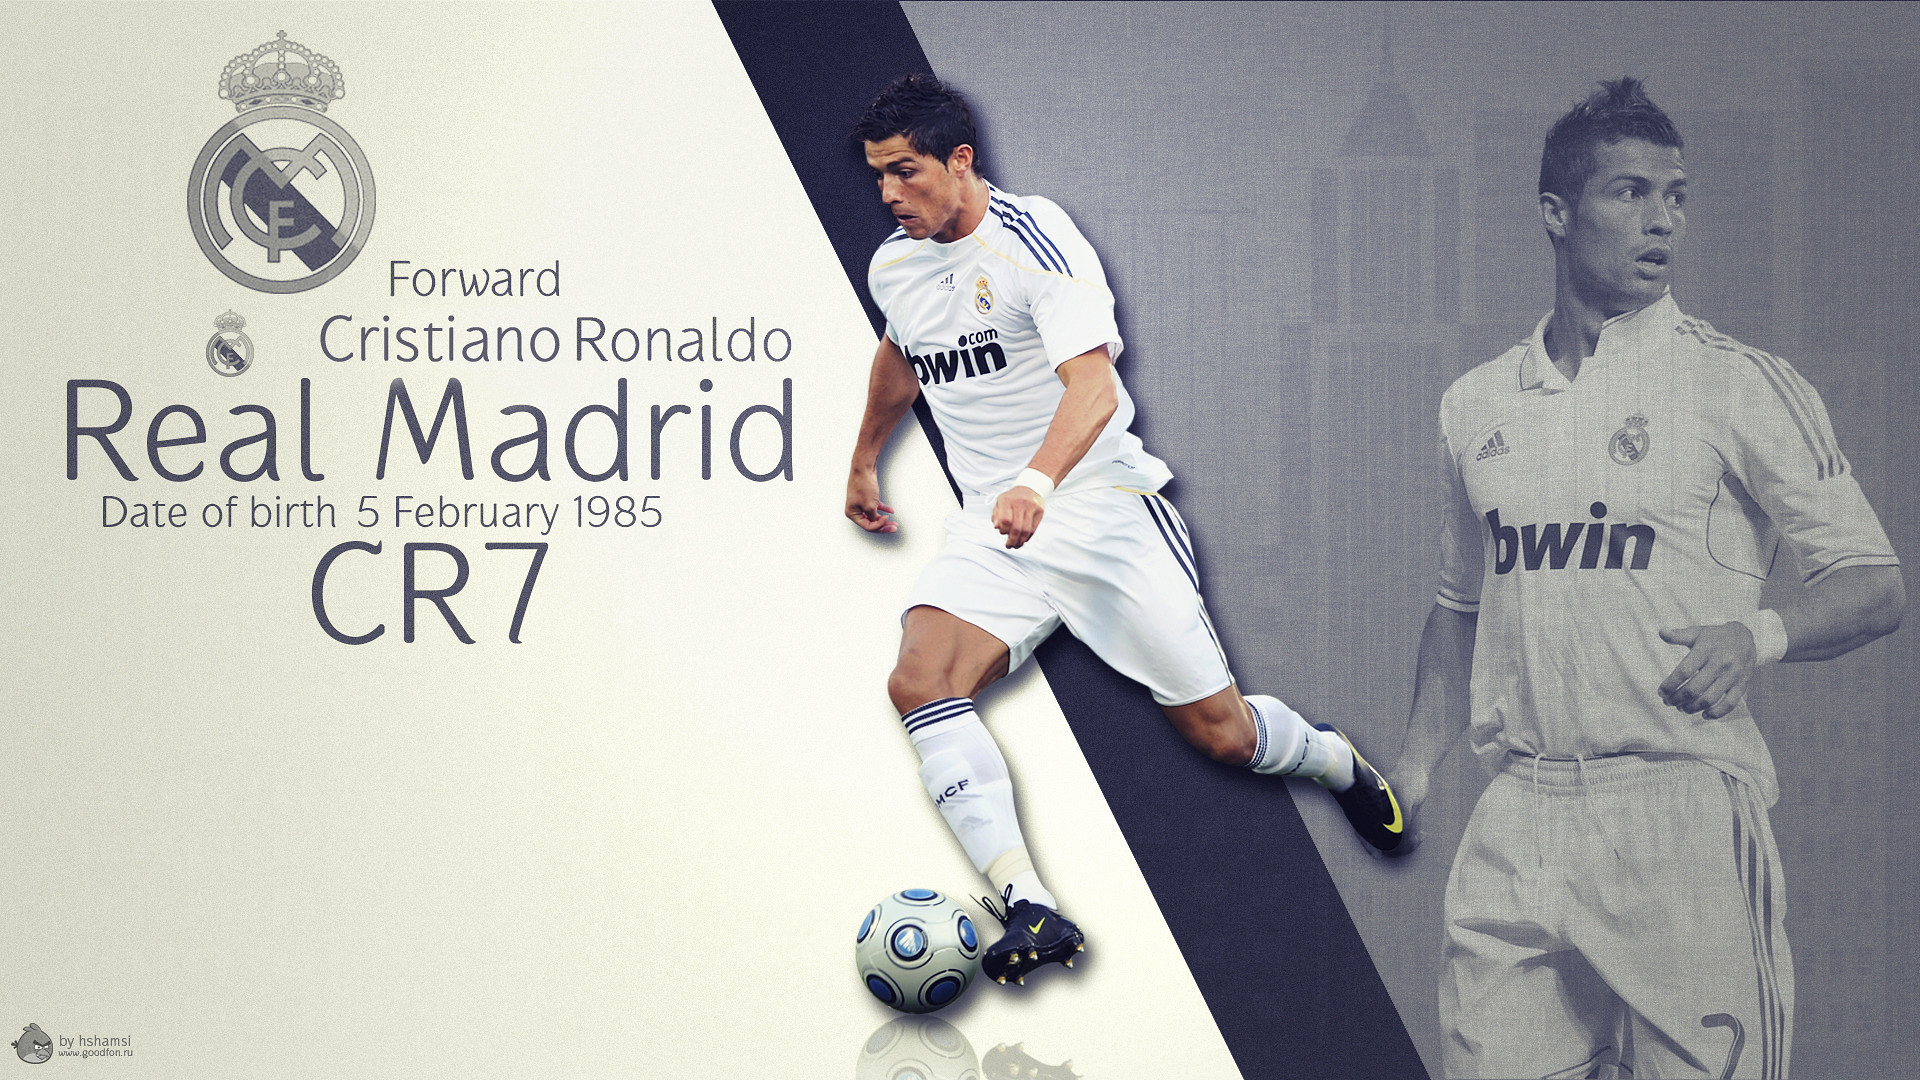 Cristiano Ronaldo Real Madrid 2015 Wallpaper 8